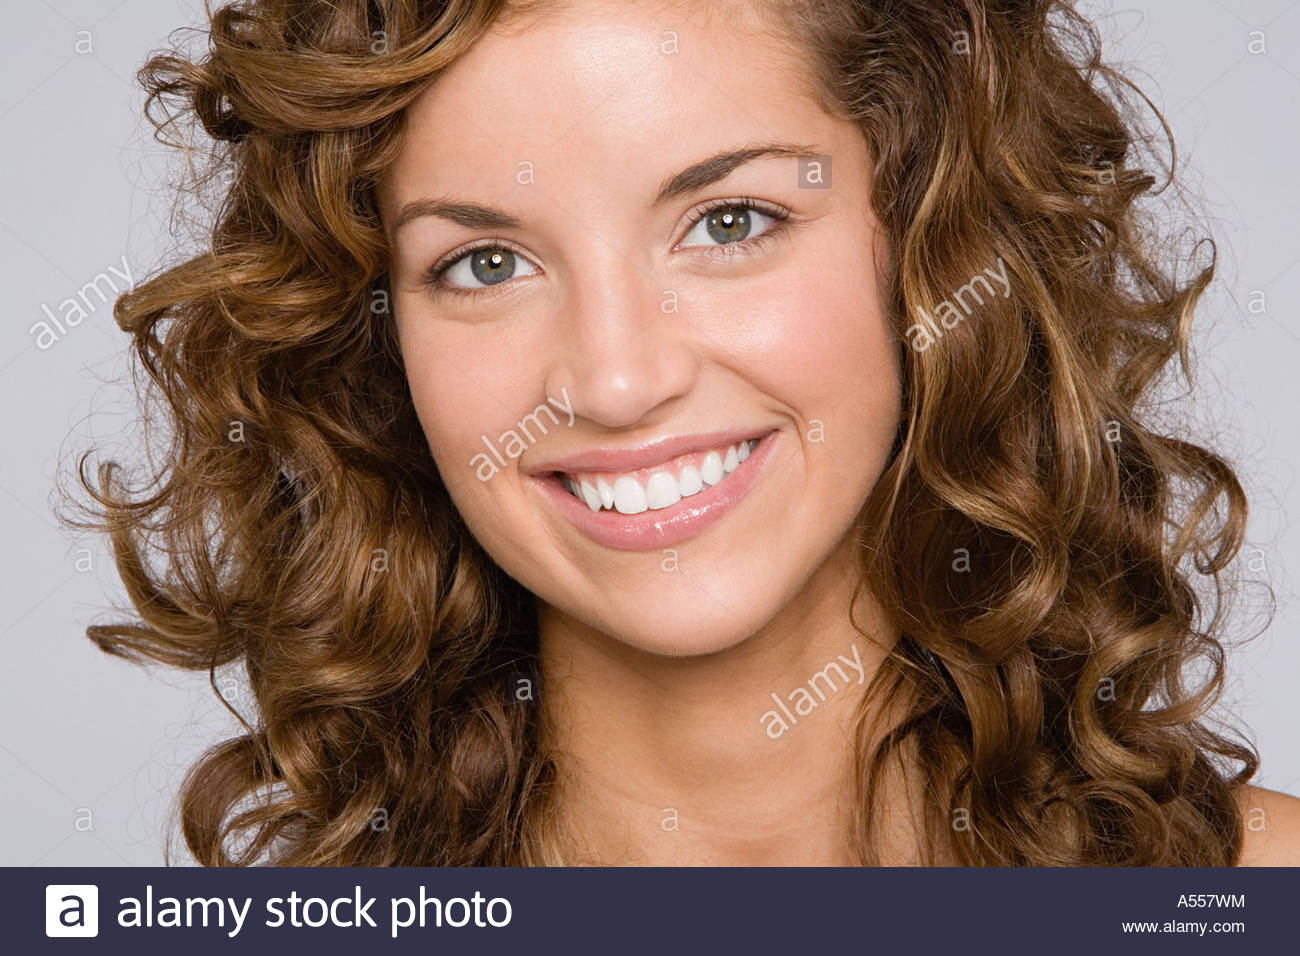 Portrait of a curly haired young woman - Stock Image